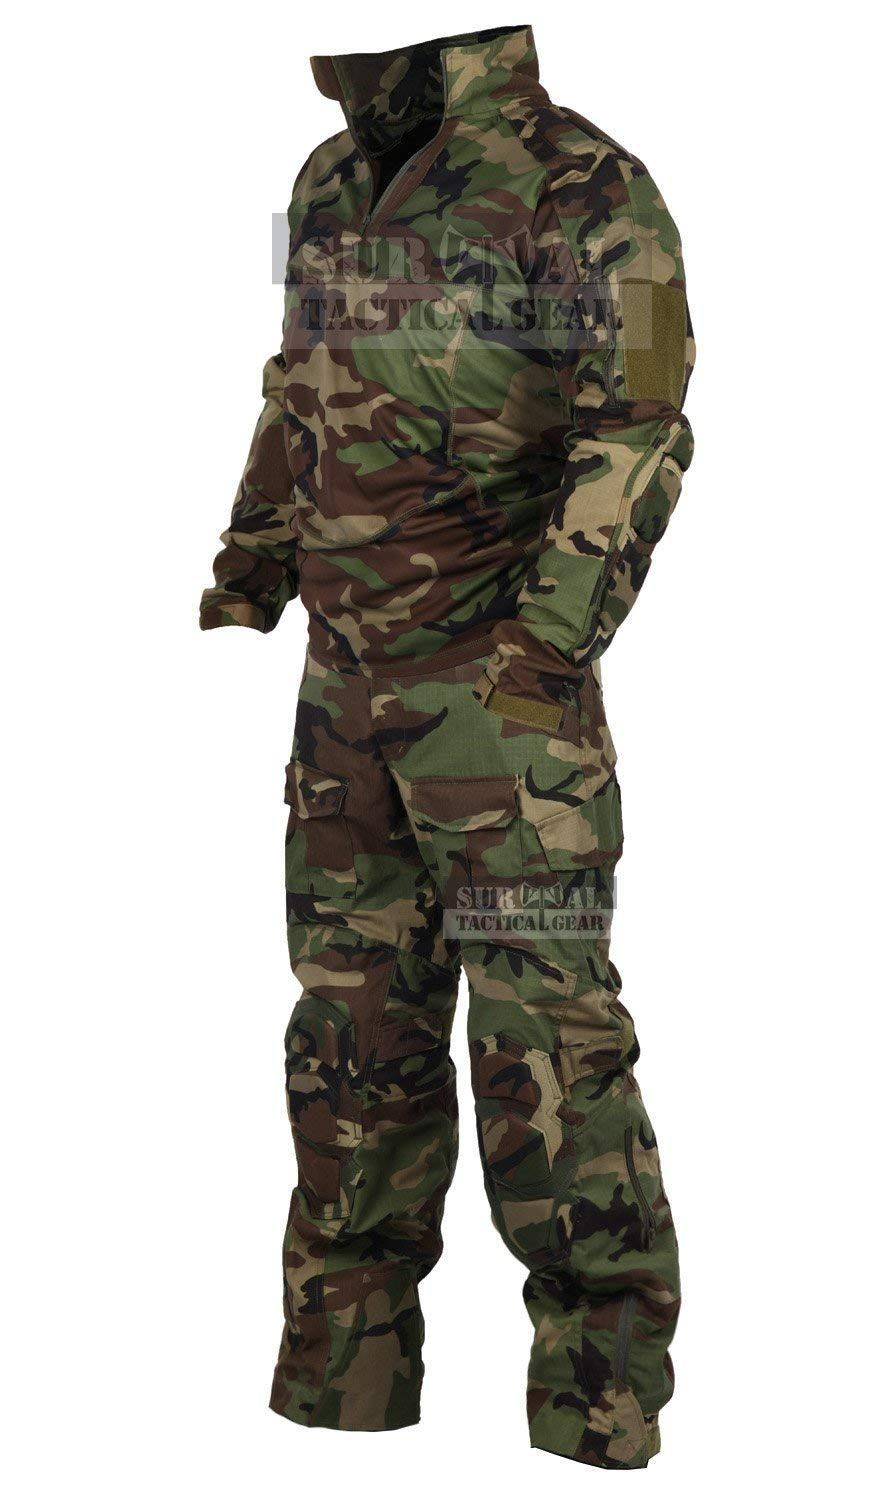 a00cc568fd69e3 Amazon.com : ZAPT Tactical Military Uniform Paintball Airsoft Hunting Army  Camo Apparel Shirt and Pants with Elbow Knee Pads Combat Clothing : Sports  & ...